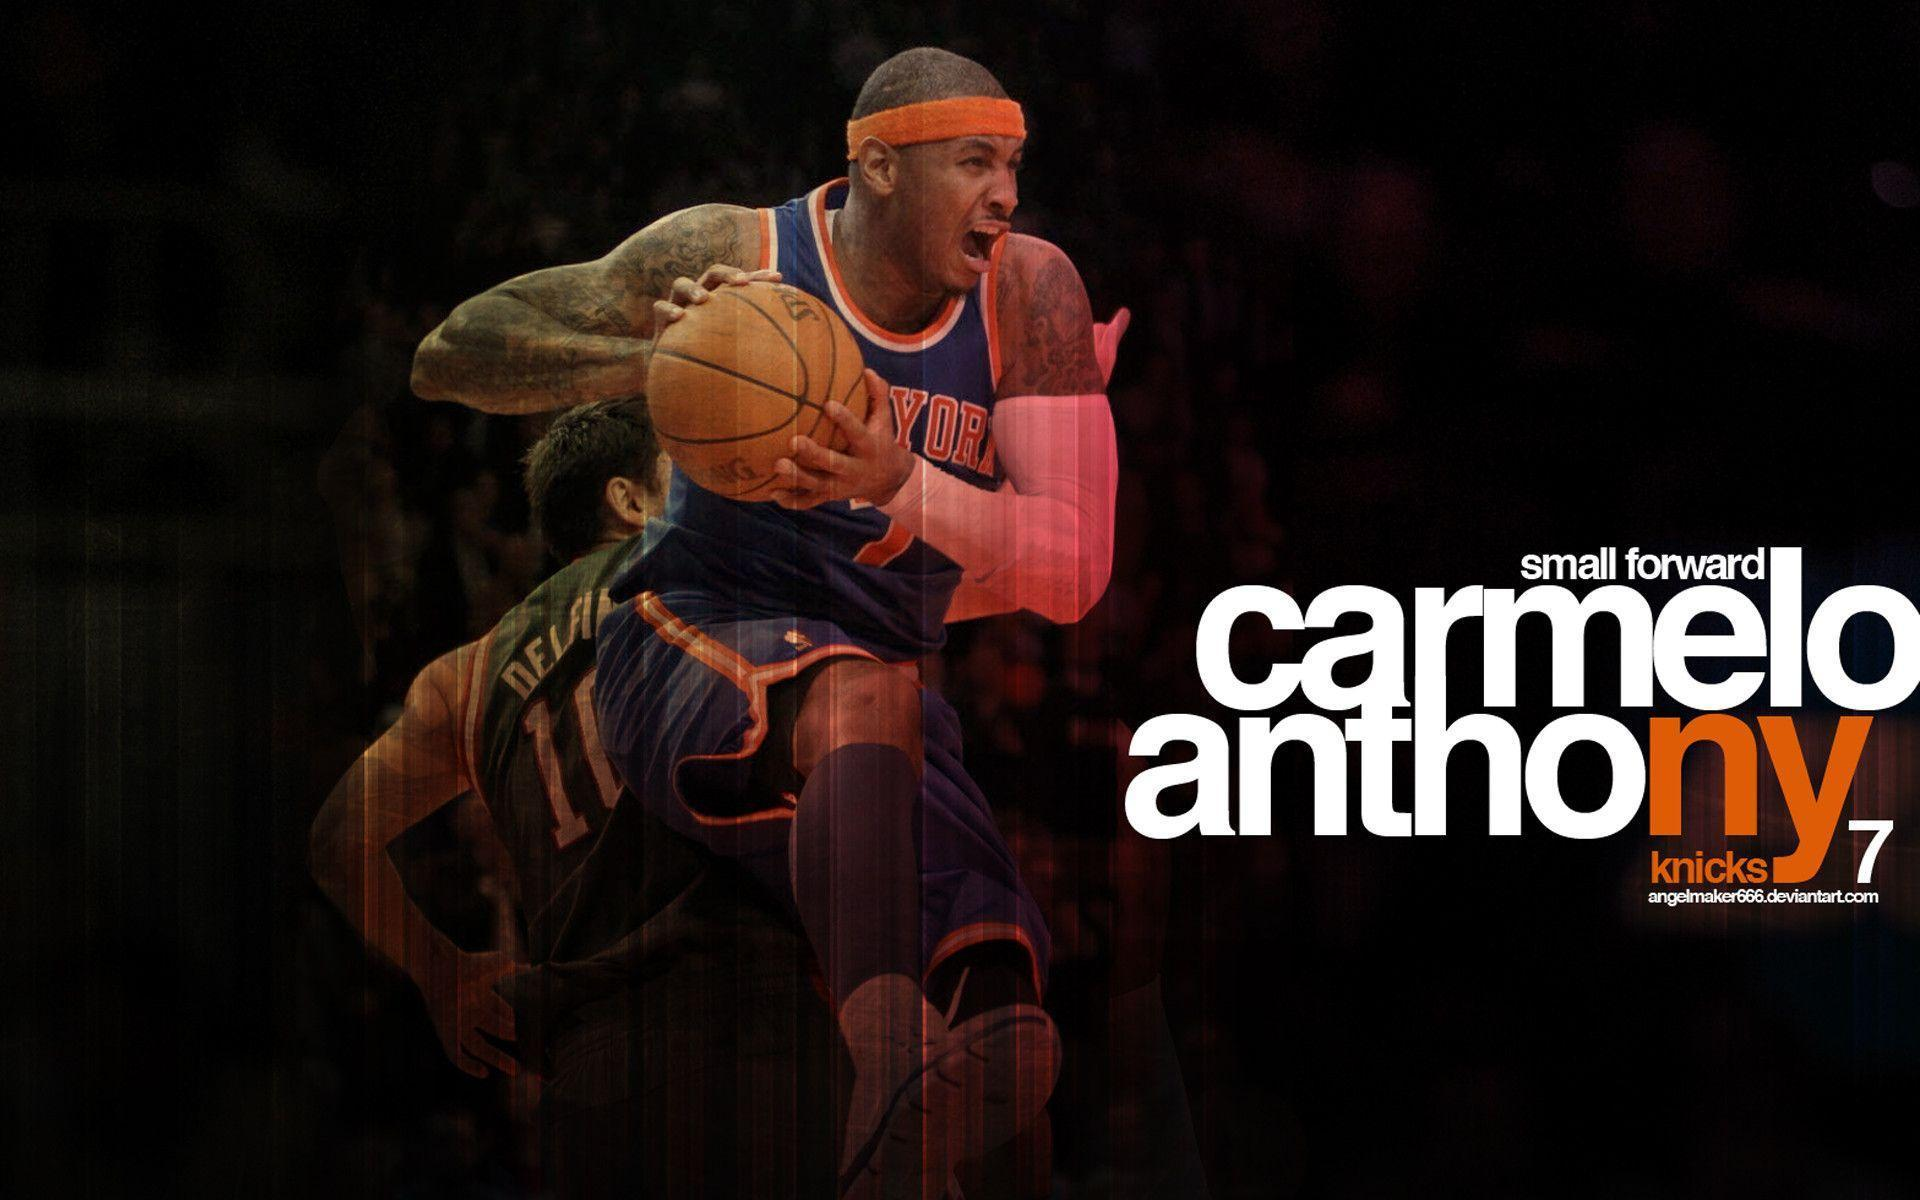 Carmelo Anthony Wallpapers Knicks - Wallpaper Cave